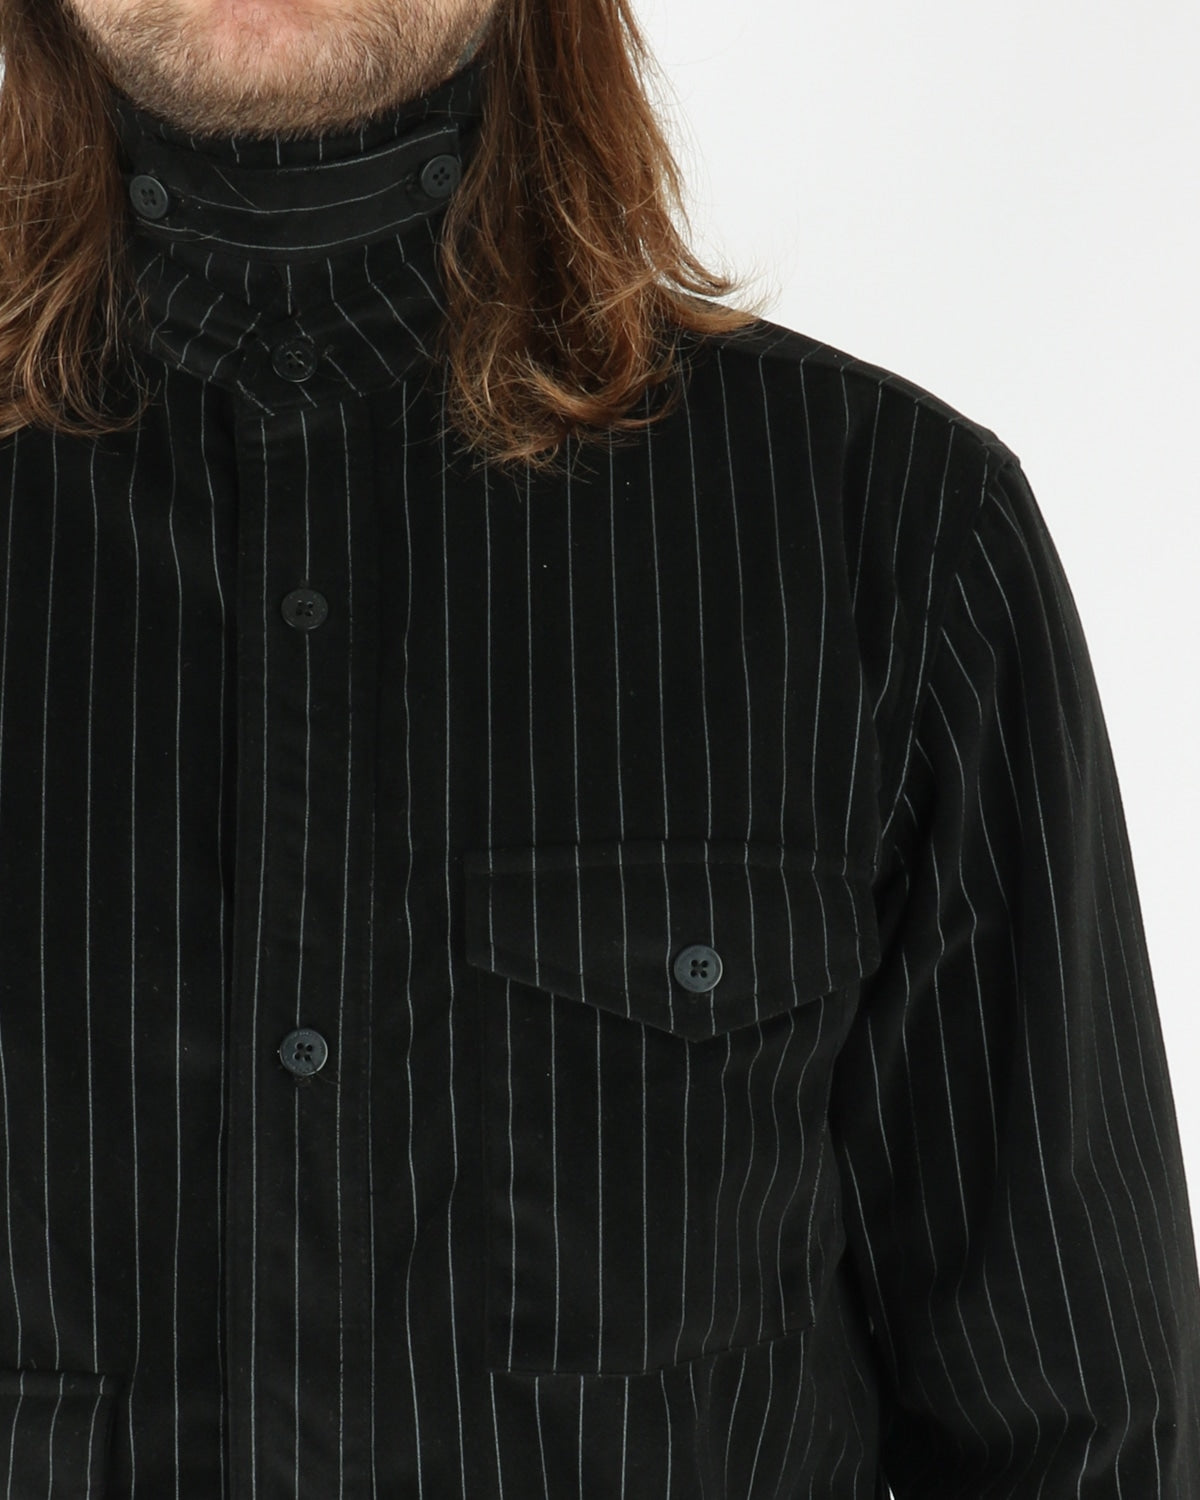 han kjobenhavn_army shirt_pinstripe_velour black_view_3_3